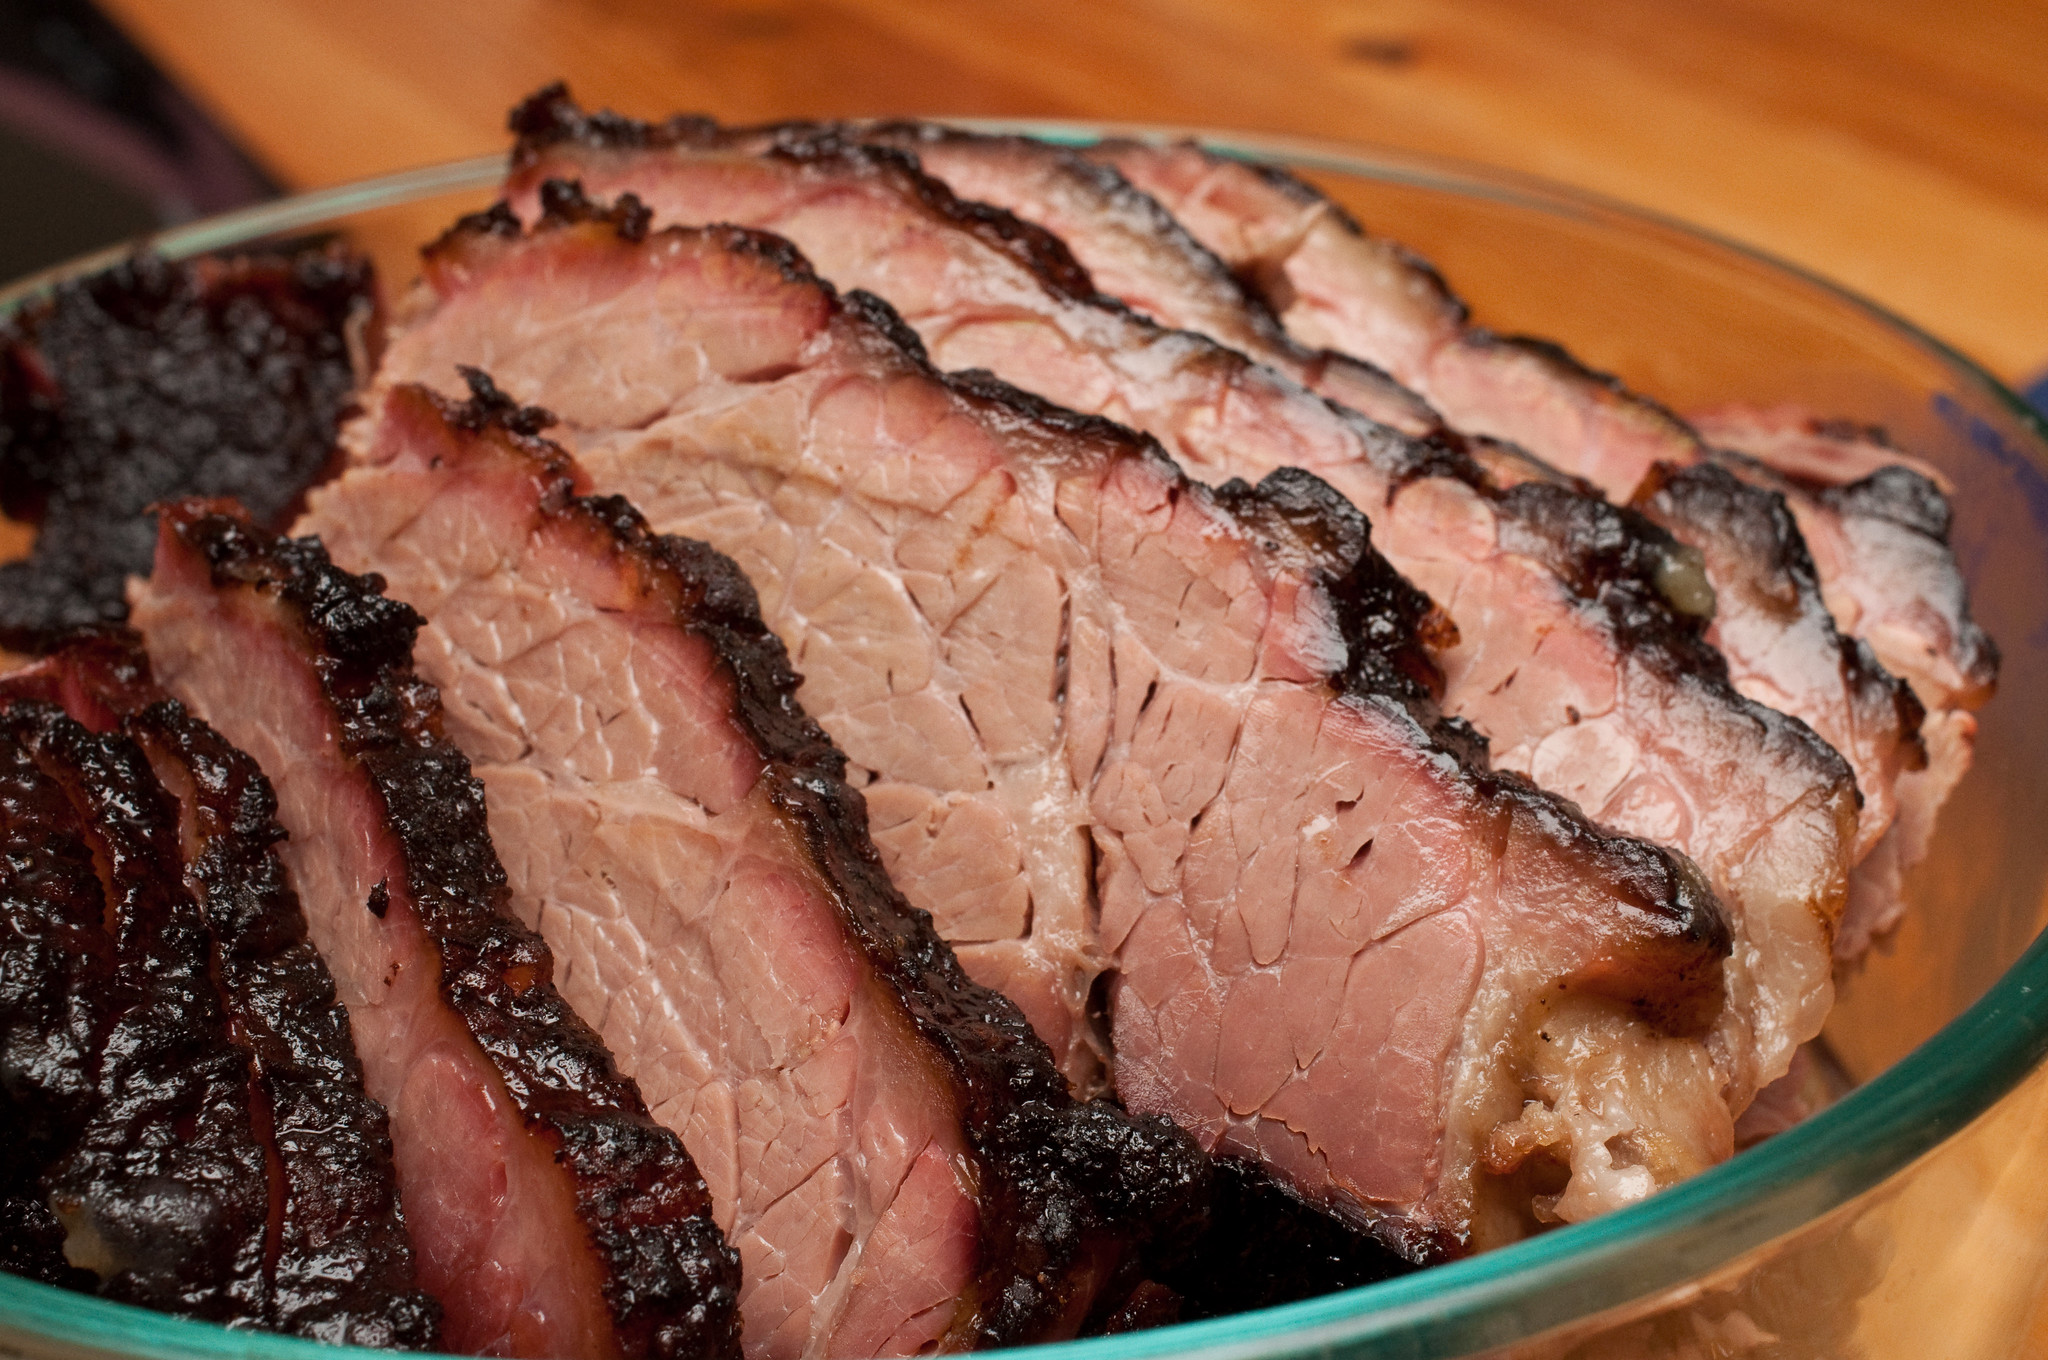 How to Cook Brisket - The Ultimate Guide